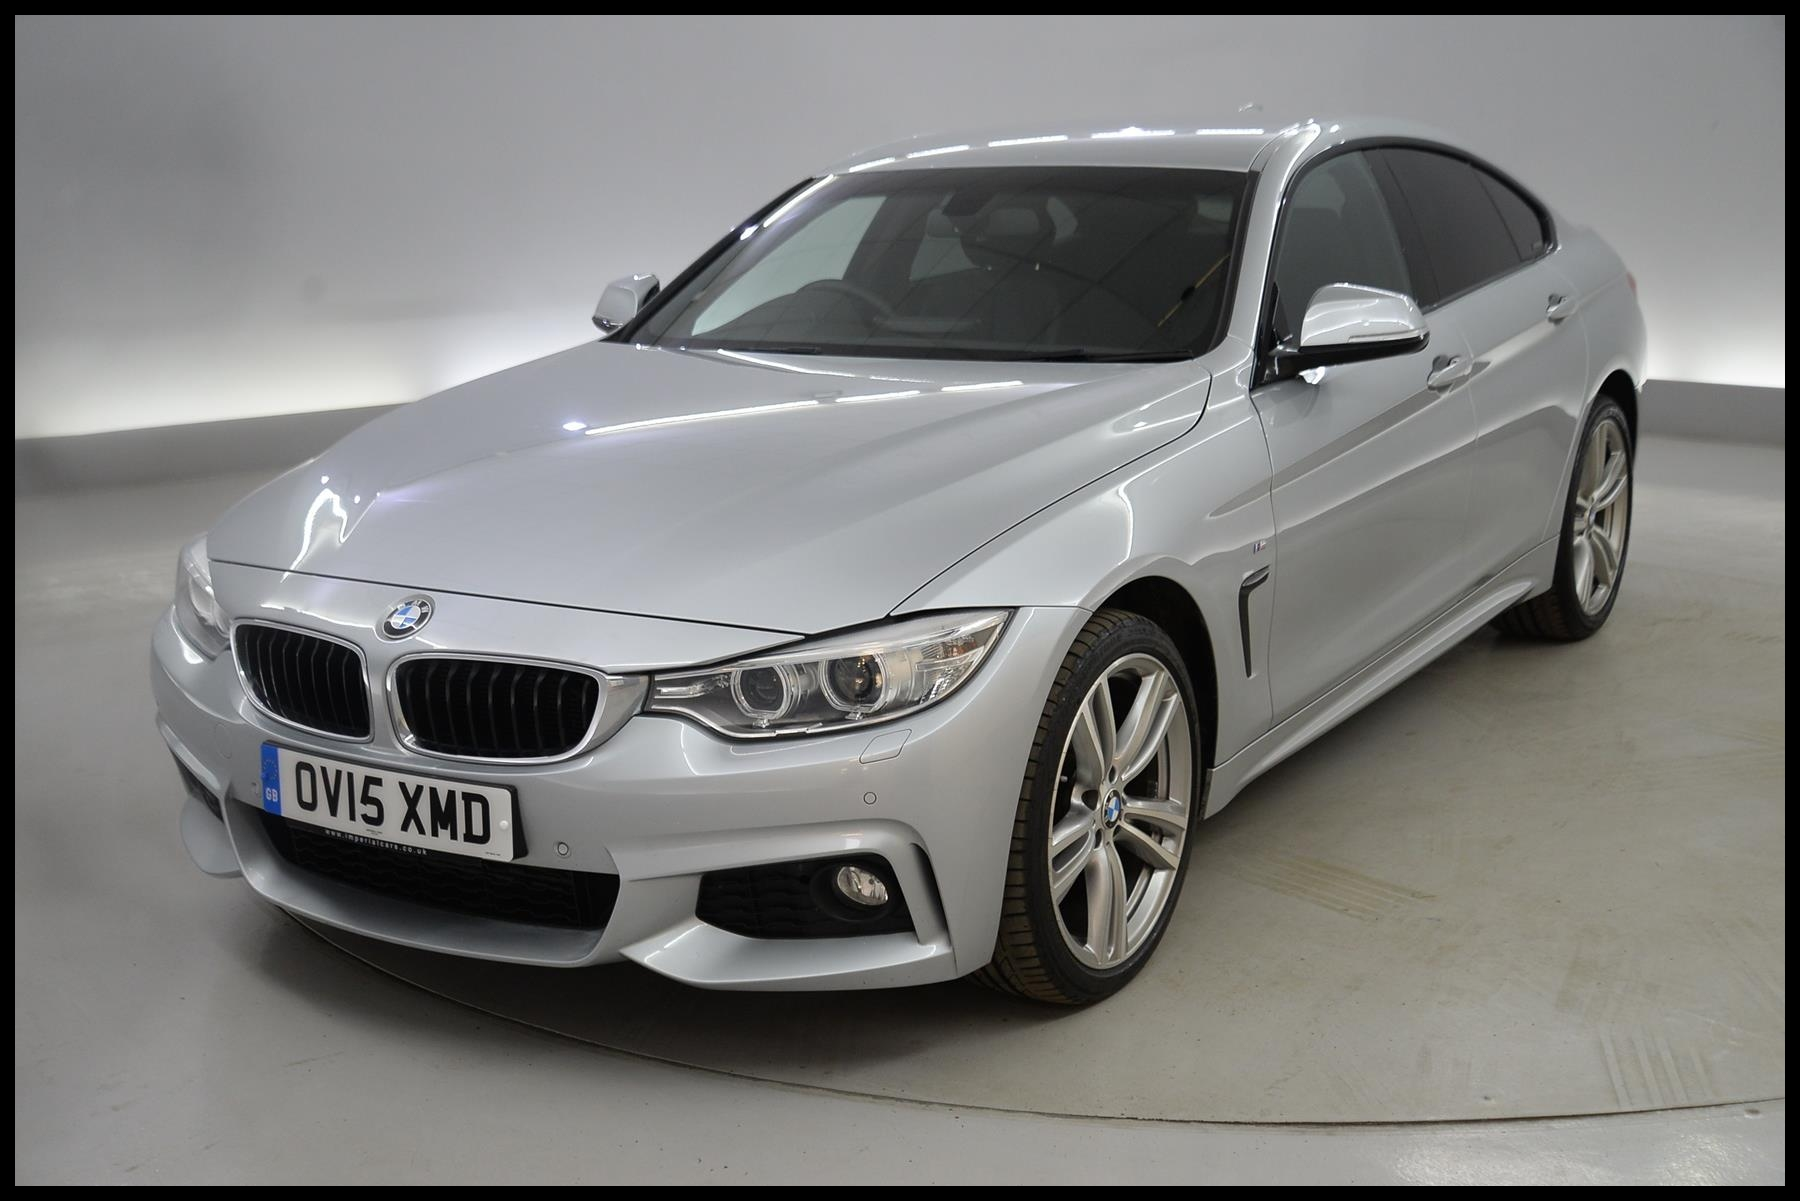 BMW 4 Series Gran Coupe 420d [190] xDrive M Sport 5dr Auto [Prof Media] ELECTRIC FOLDING MIRRORS 2015